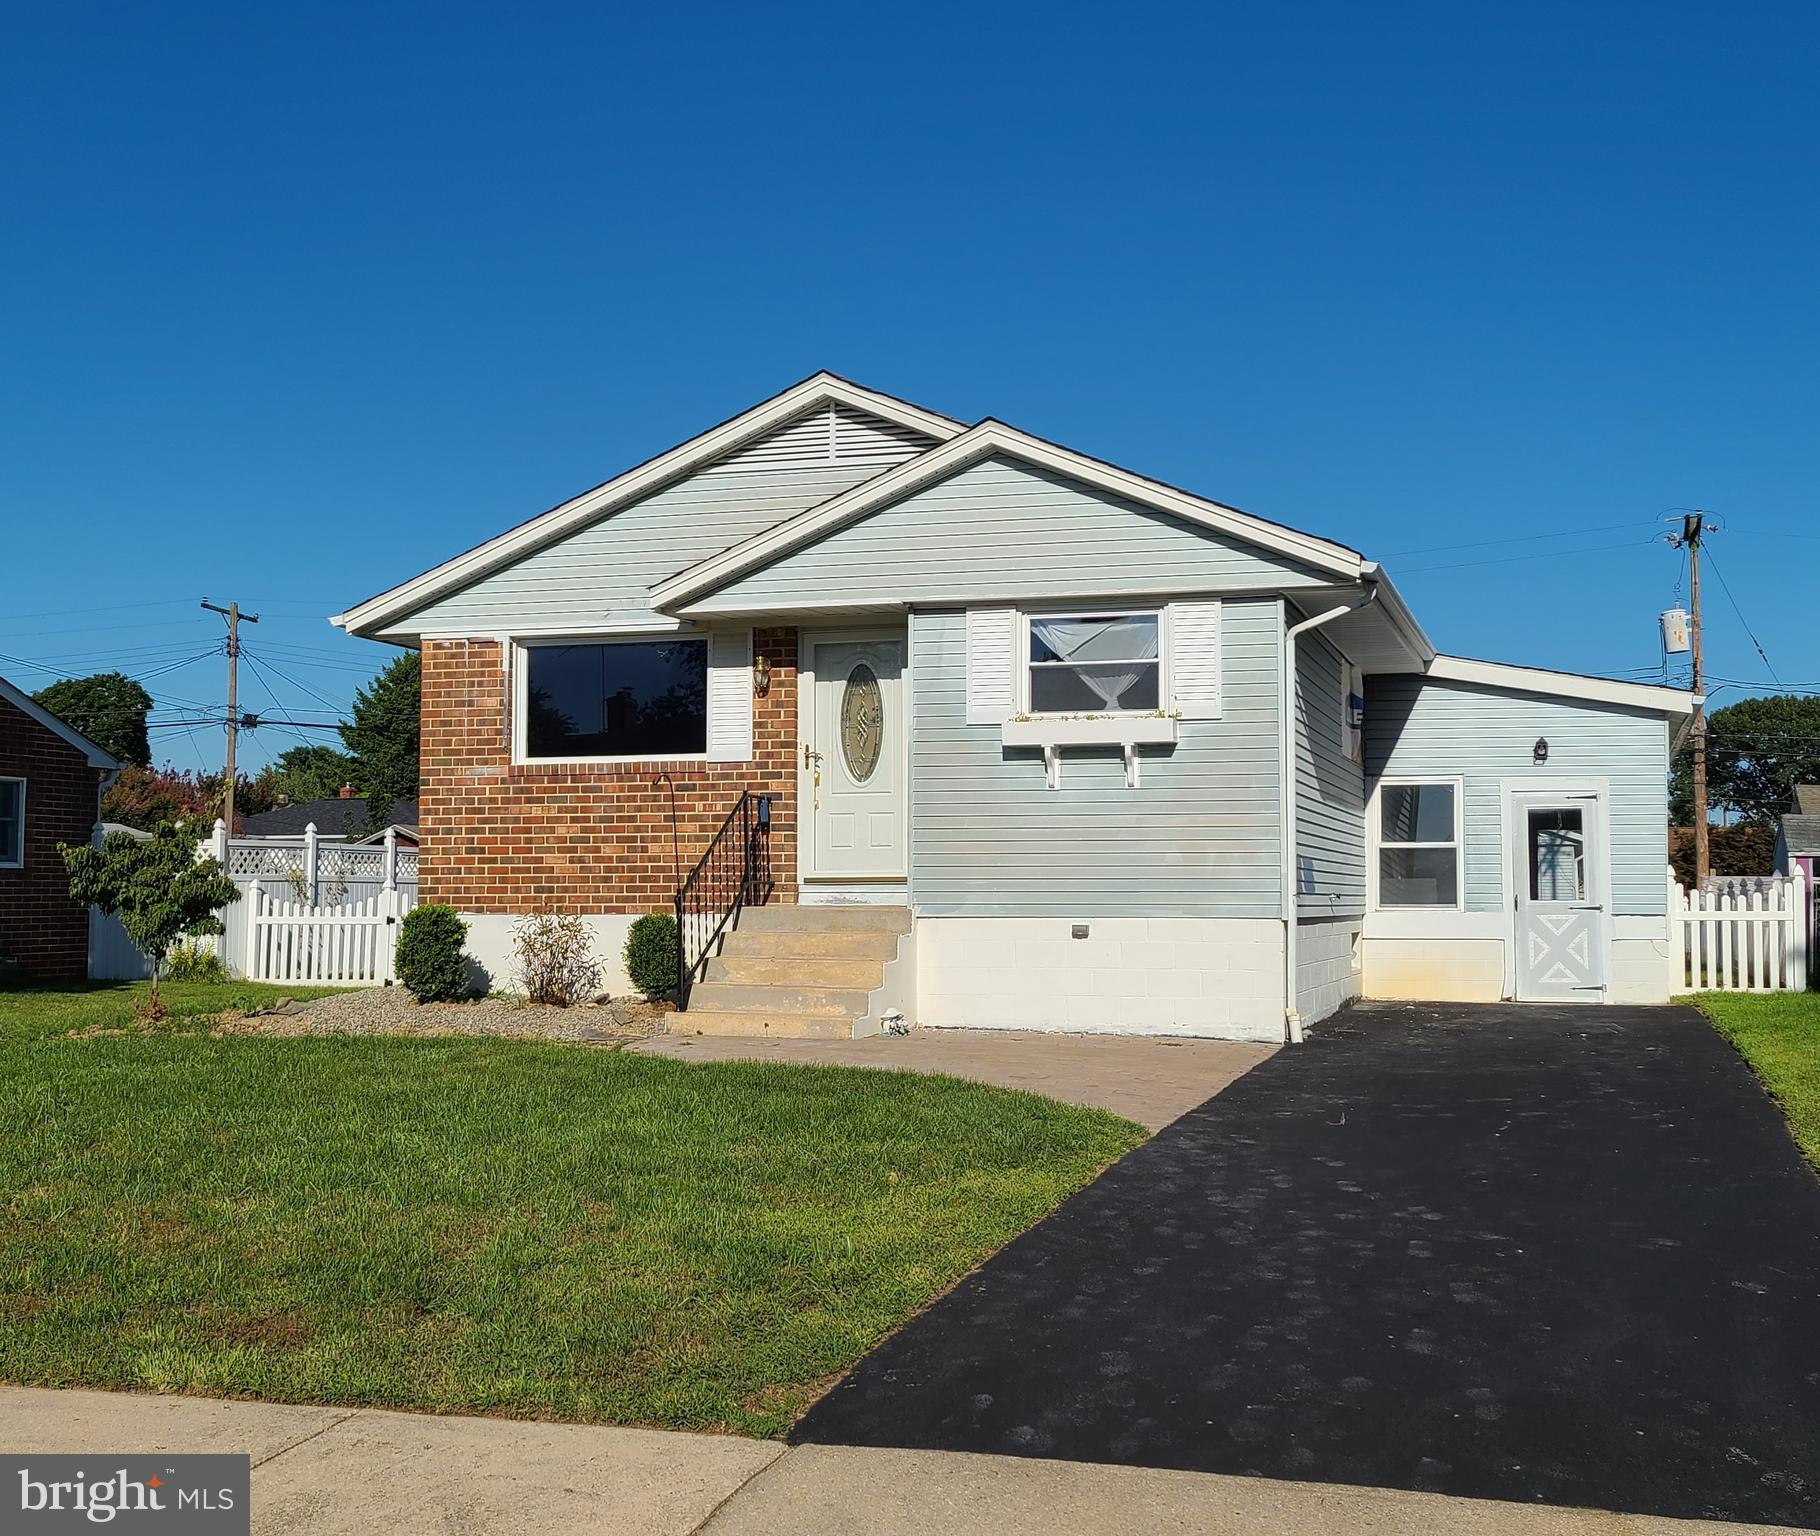 INVESTOR ALERT- Excellent opportunity for a renovation right in Middletown. Nestled in the community of Sharondale this lovely rancher with 3 bedroom, 1 full, 1 half bath home is ready for finishing touches. Mechanically and structurally sound with new water heater, oil tank, and outdoor condensing unit.  ALL PERSONAL PROPERTY INCLUDED, AS-IS CONDTION. INSPECTIONS FOR INFORMATIONAL PURPOSES ONLY. NO INVESTOR WAITING PERIOD. Call to take a tour today!